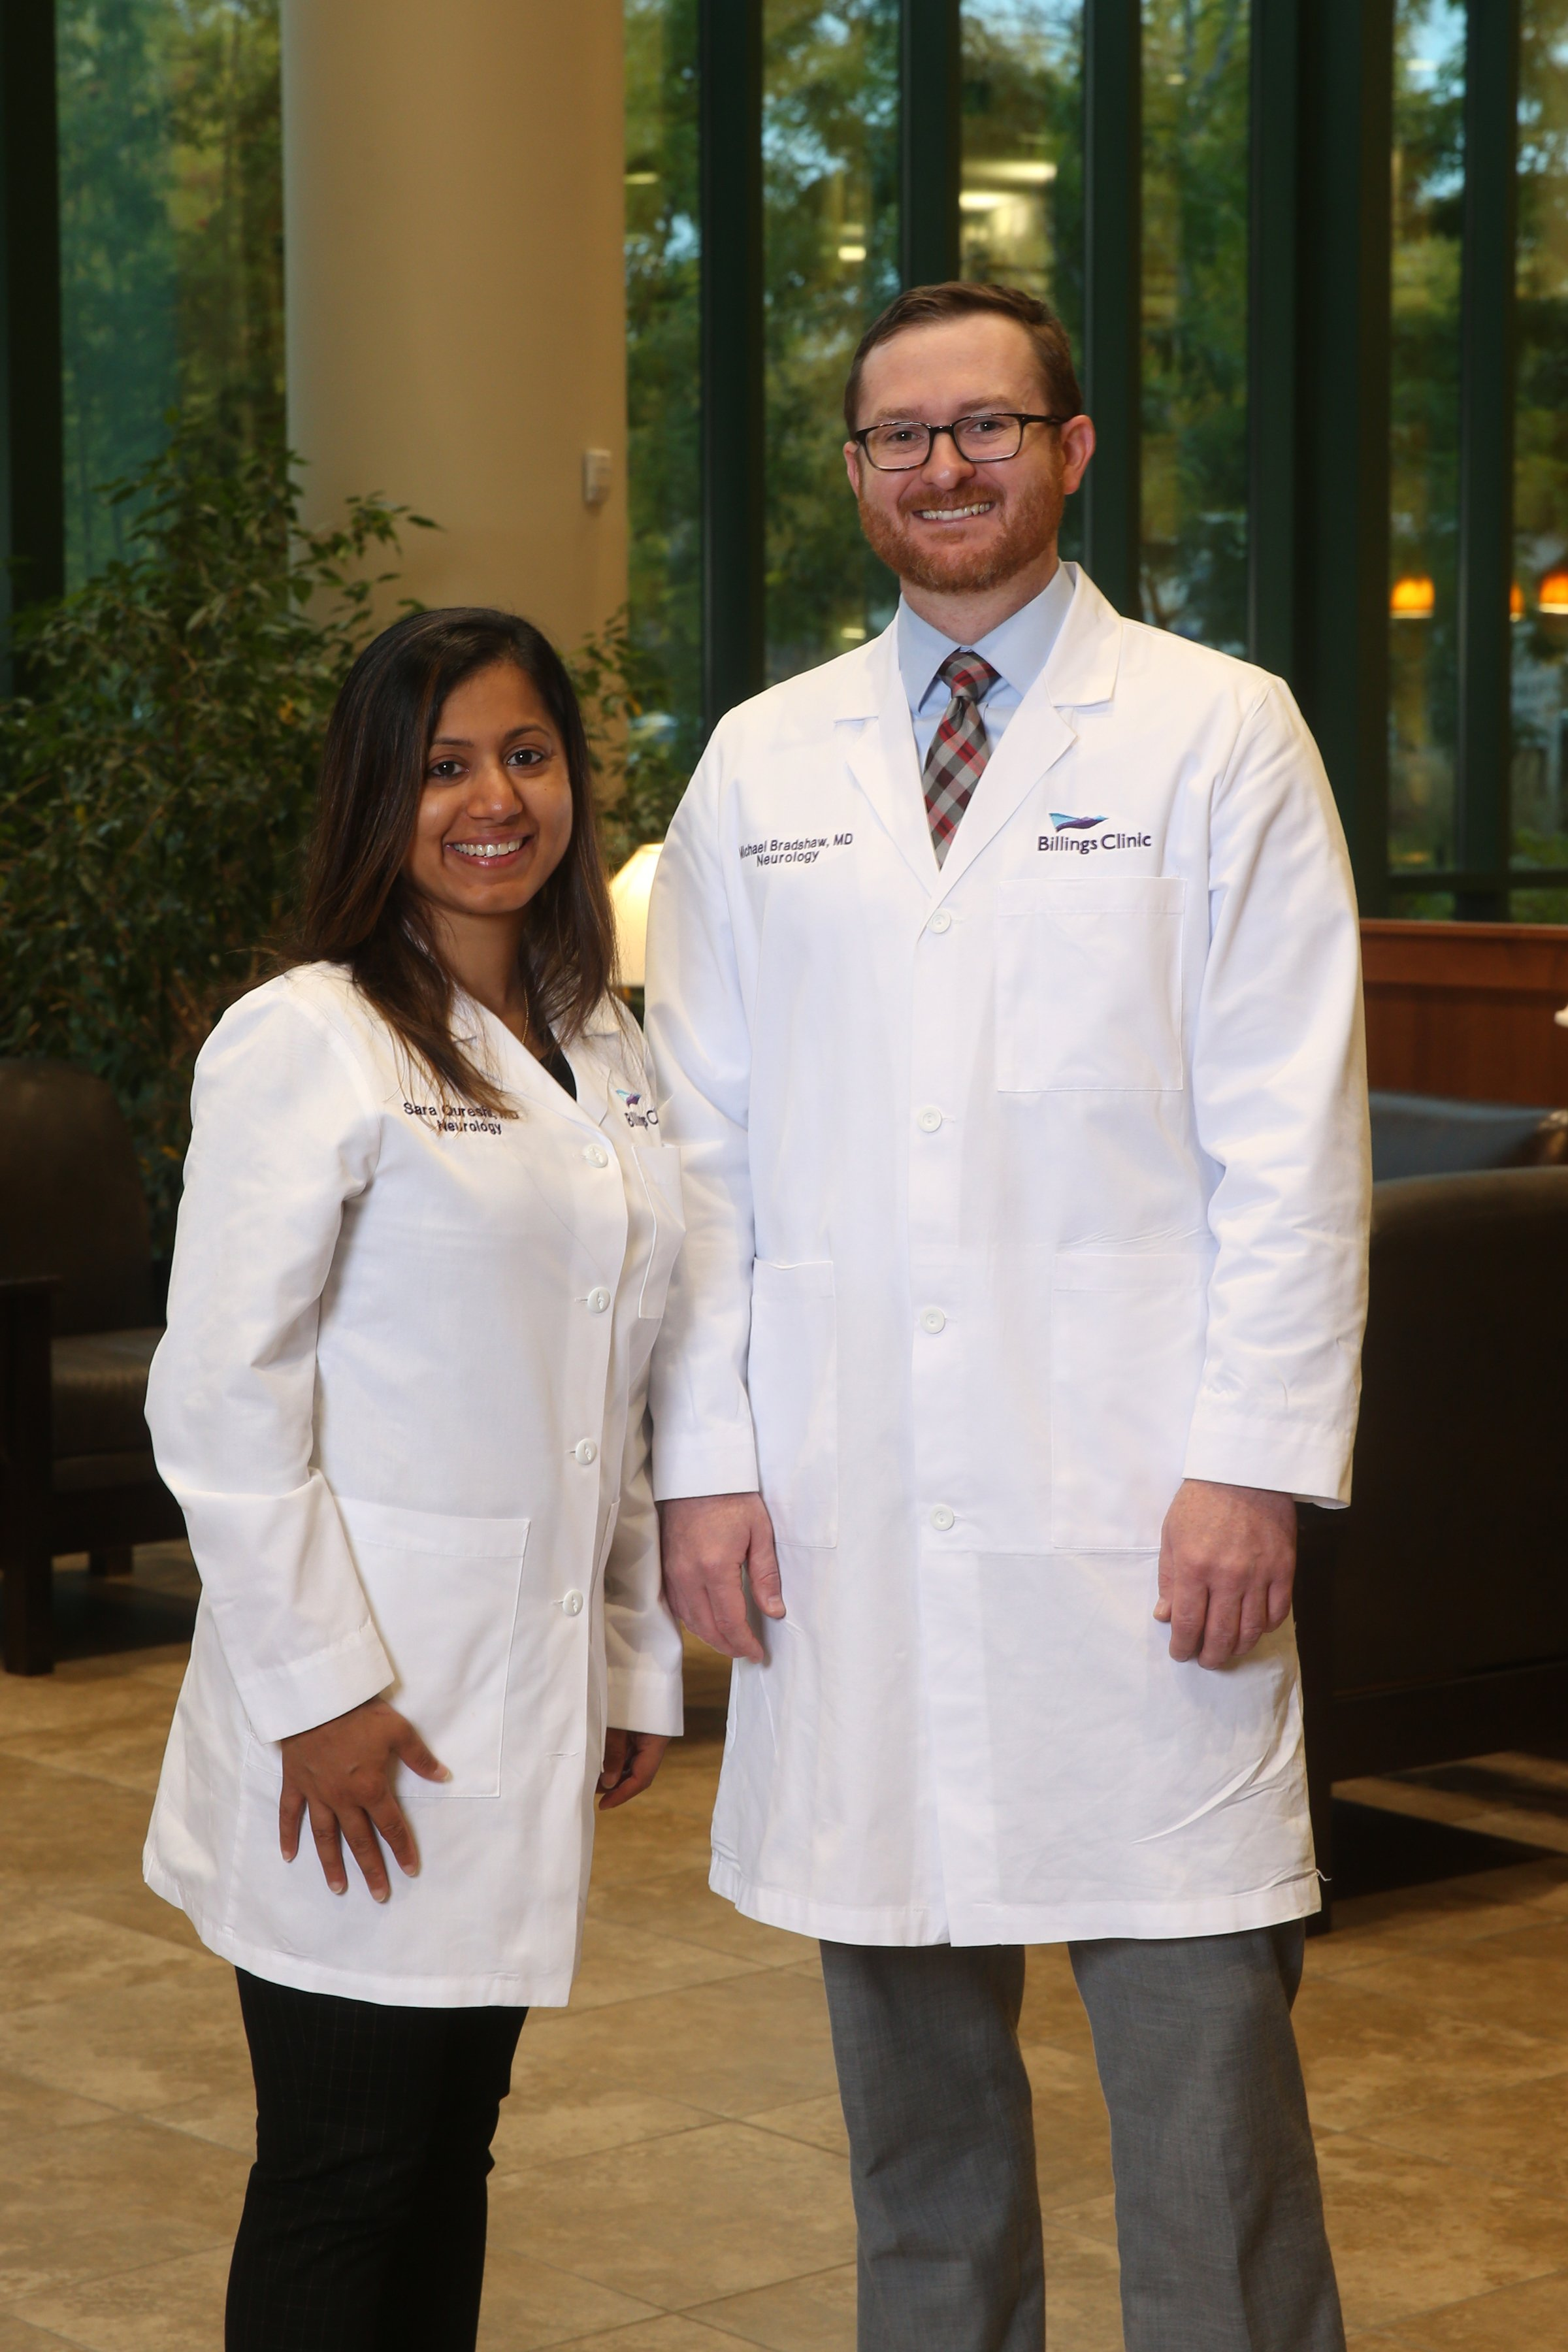 Drs. Qureshi and Bradshaw